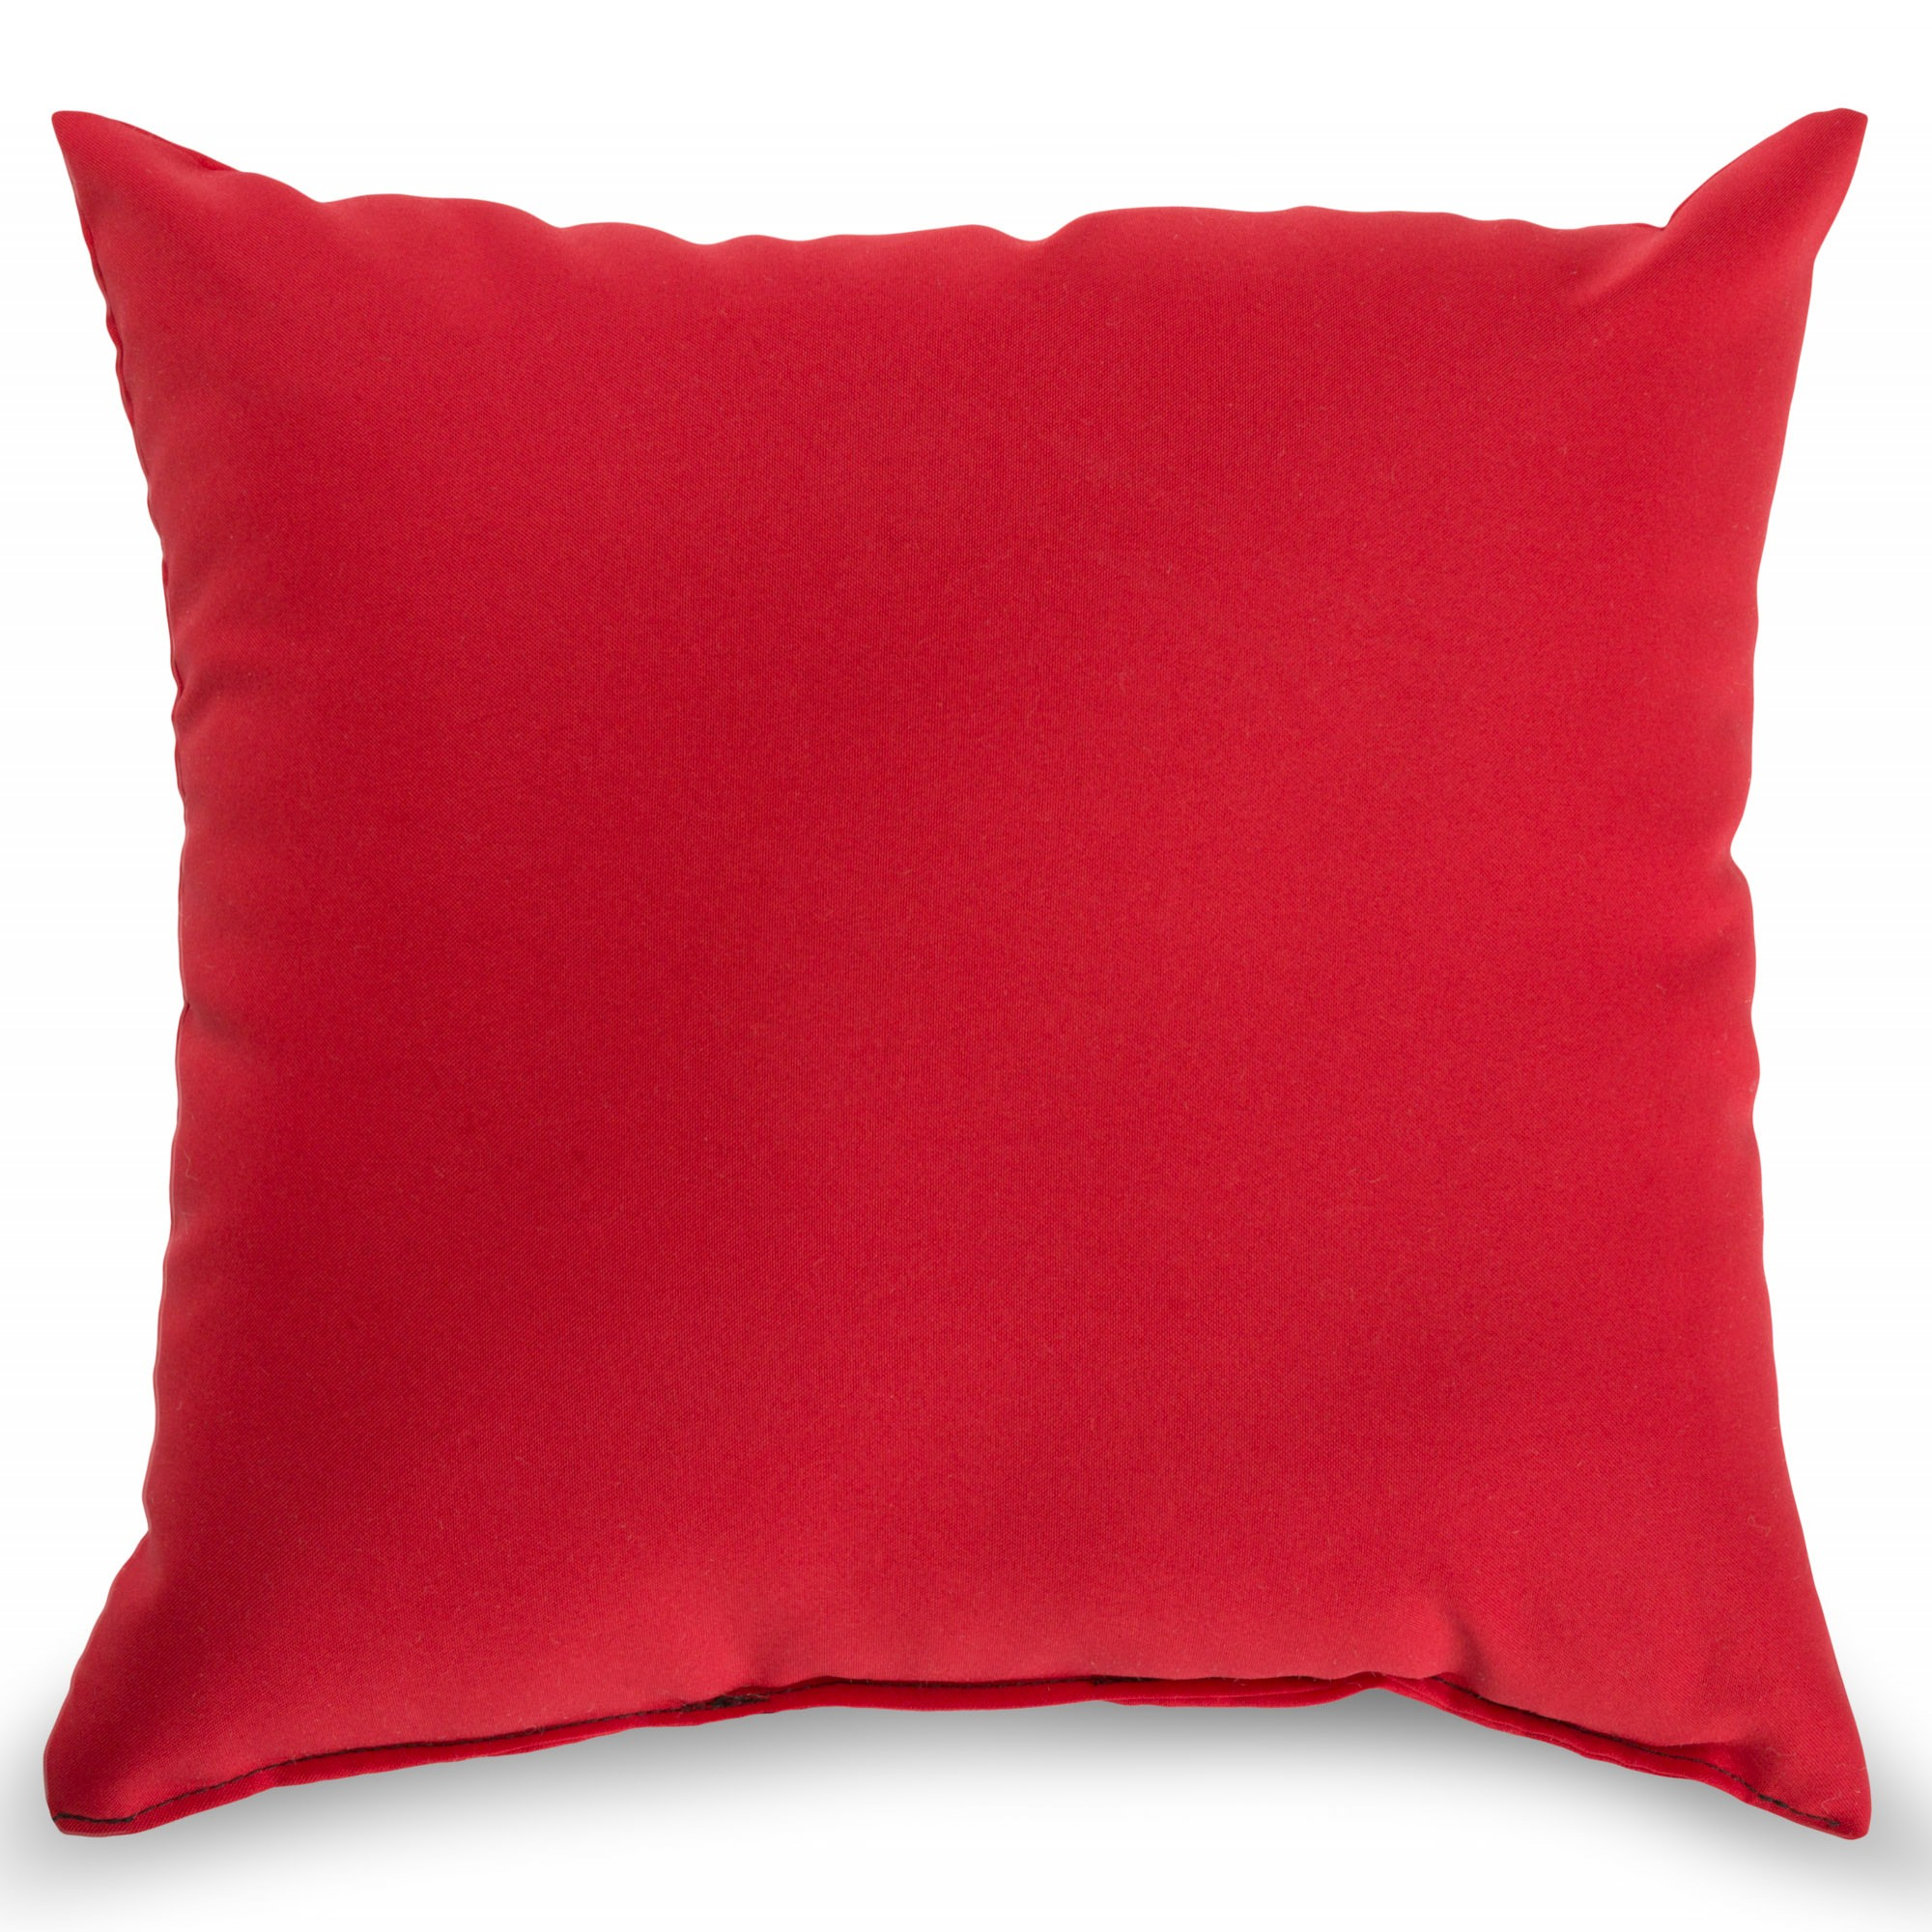 Red Outdoor Throw Pillow  BSQIRDK  DFOHome